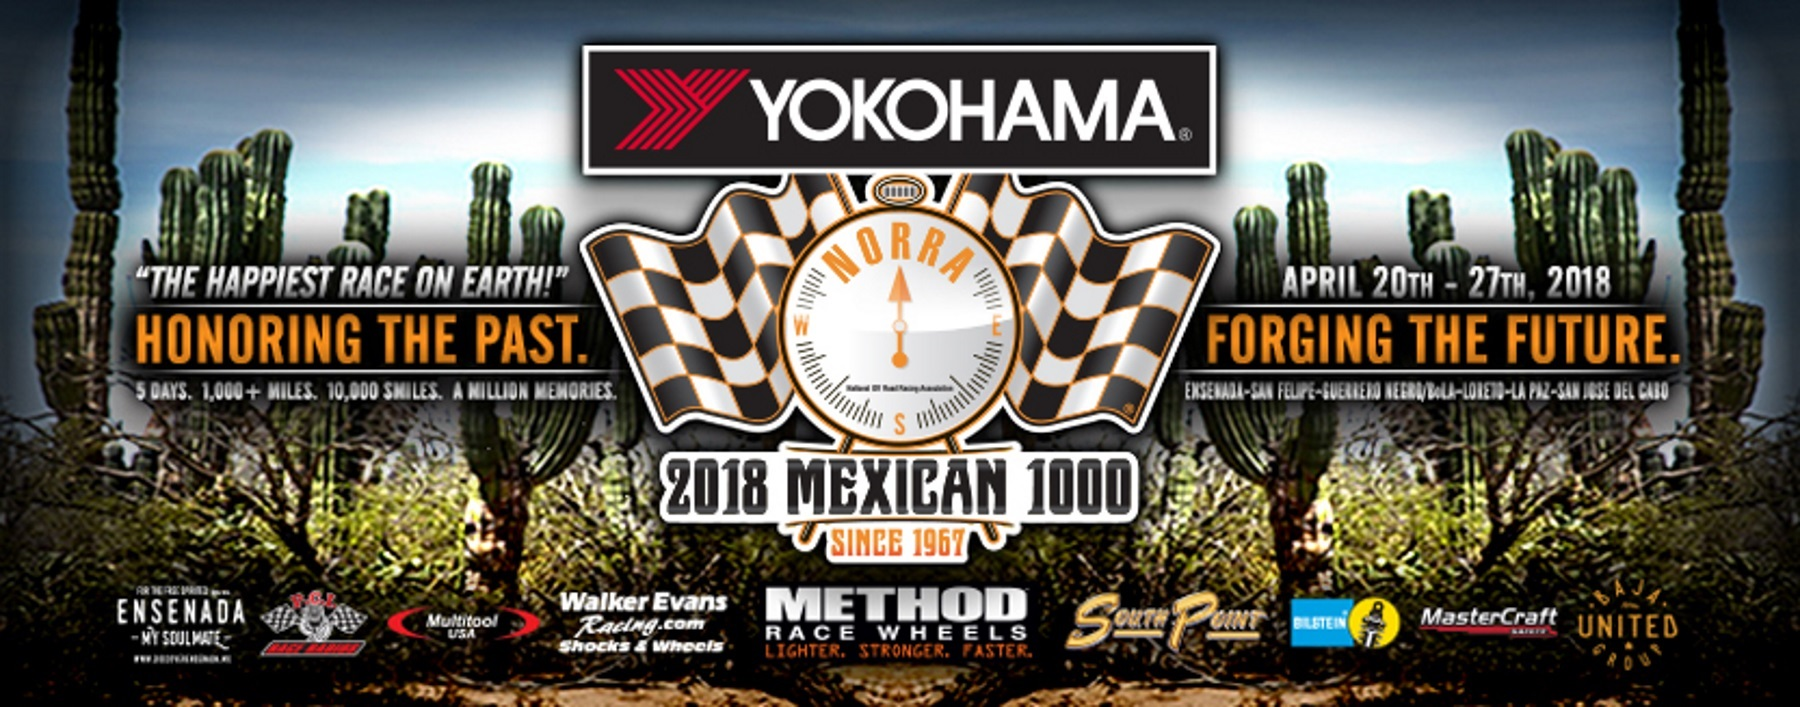 Yokohama to Rock Baja as Title Sponsor of the 2018 Yokohama NORRA Mexican 1000